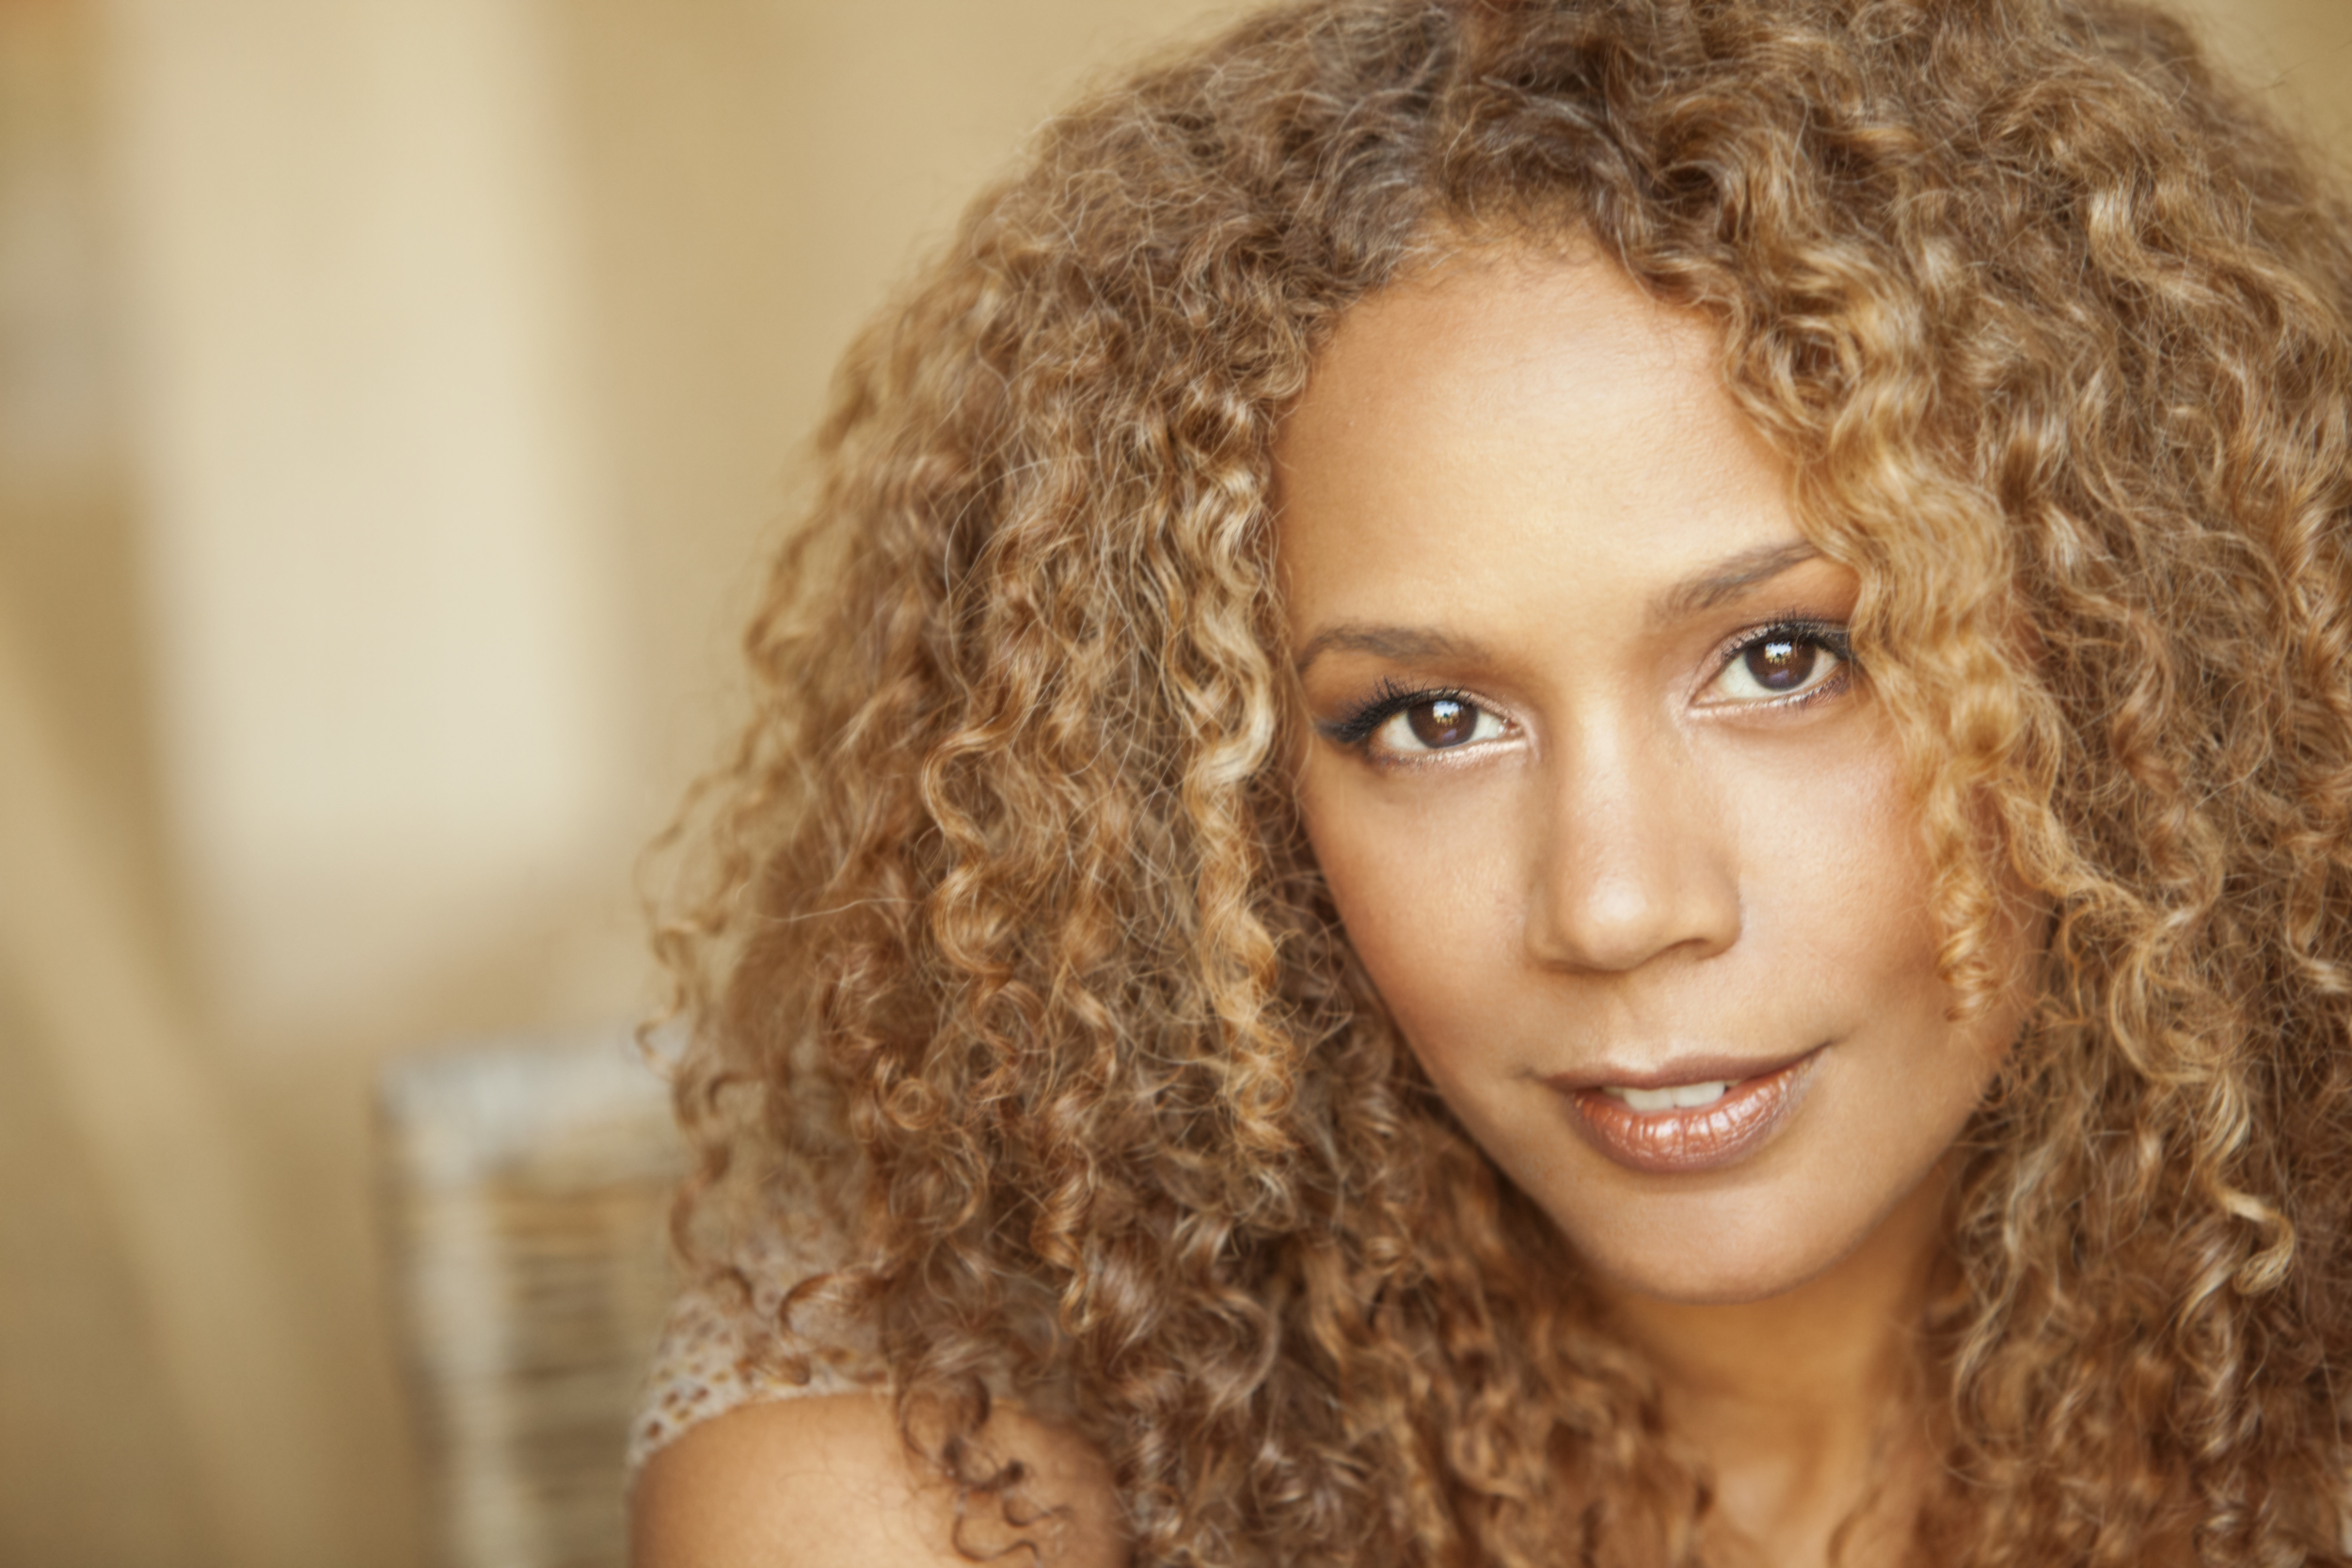 ABOUT RACHEL TRUE THE ACTRESS